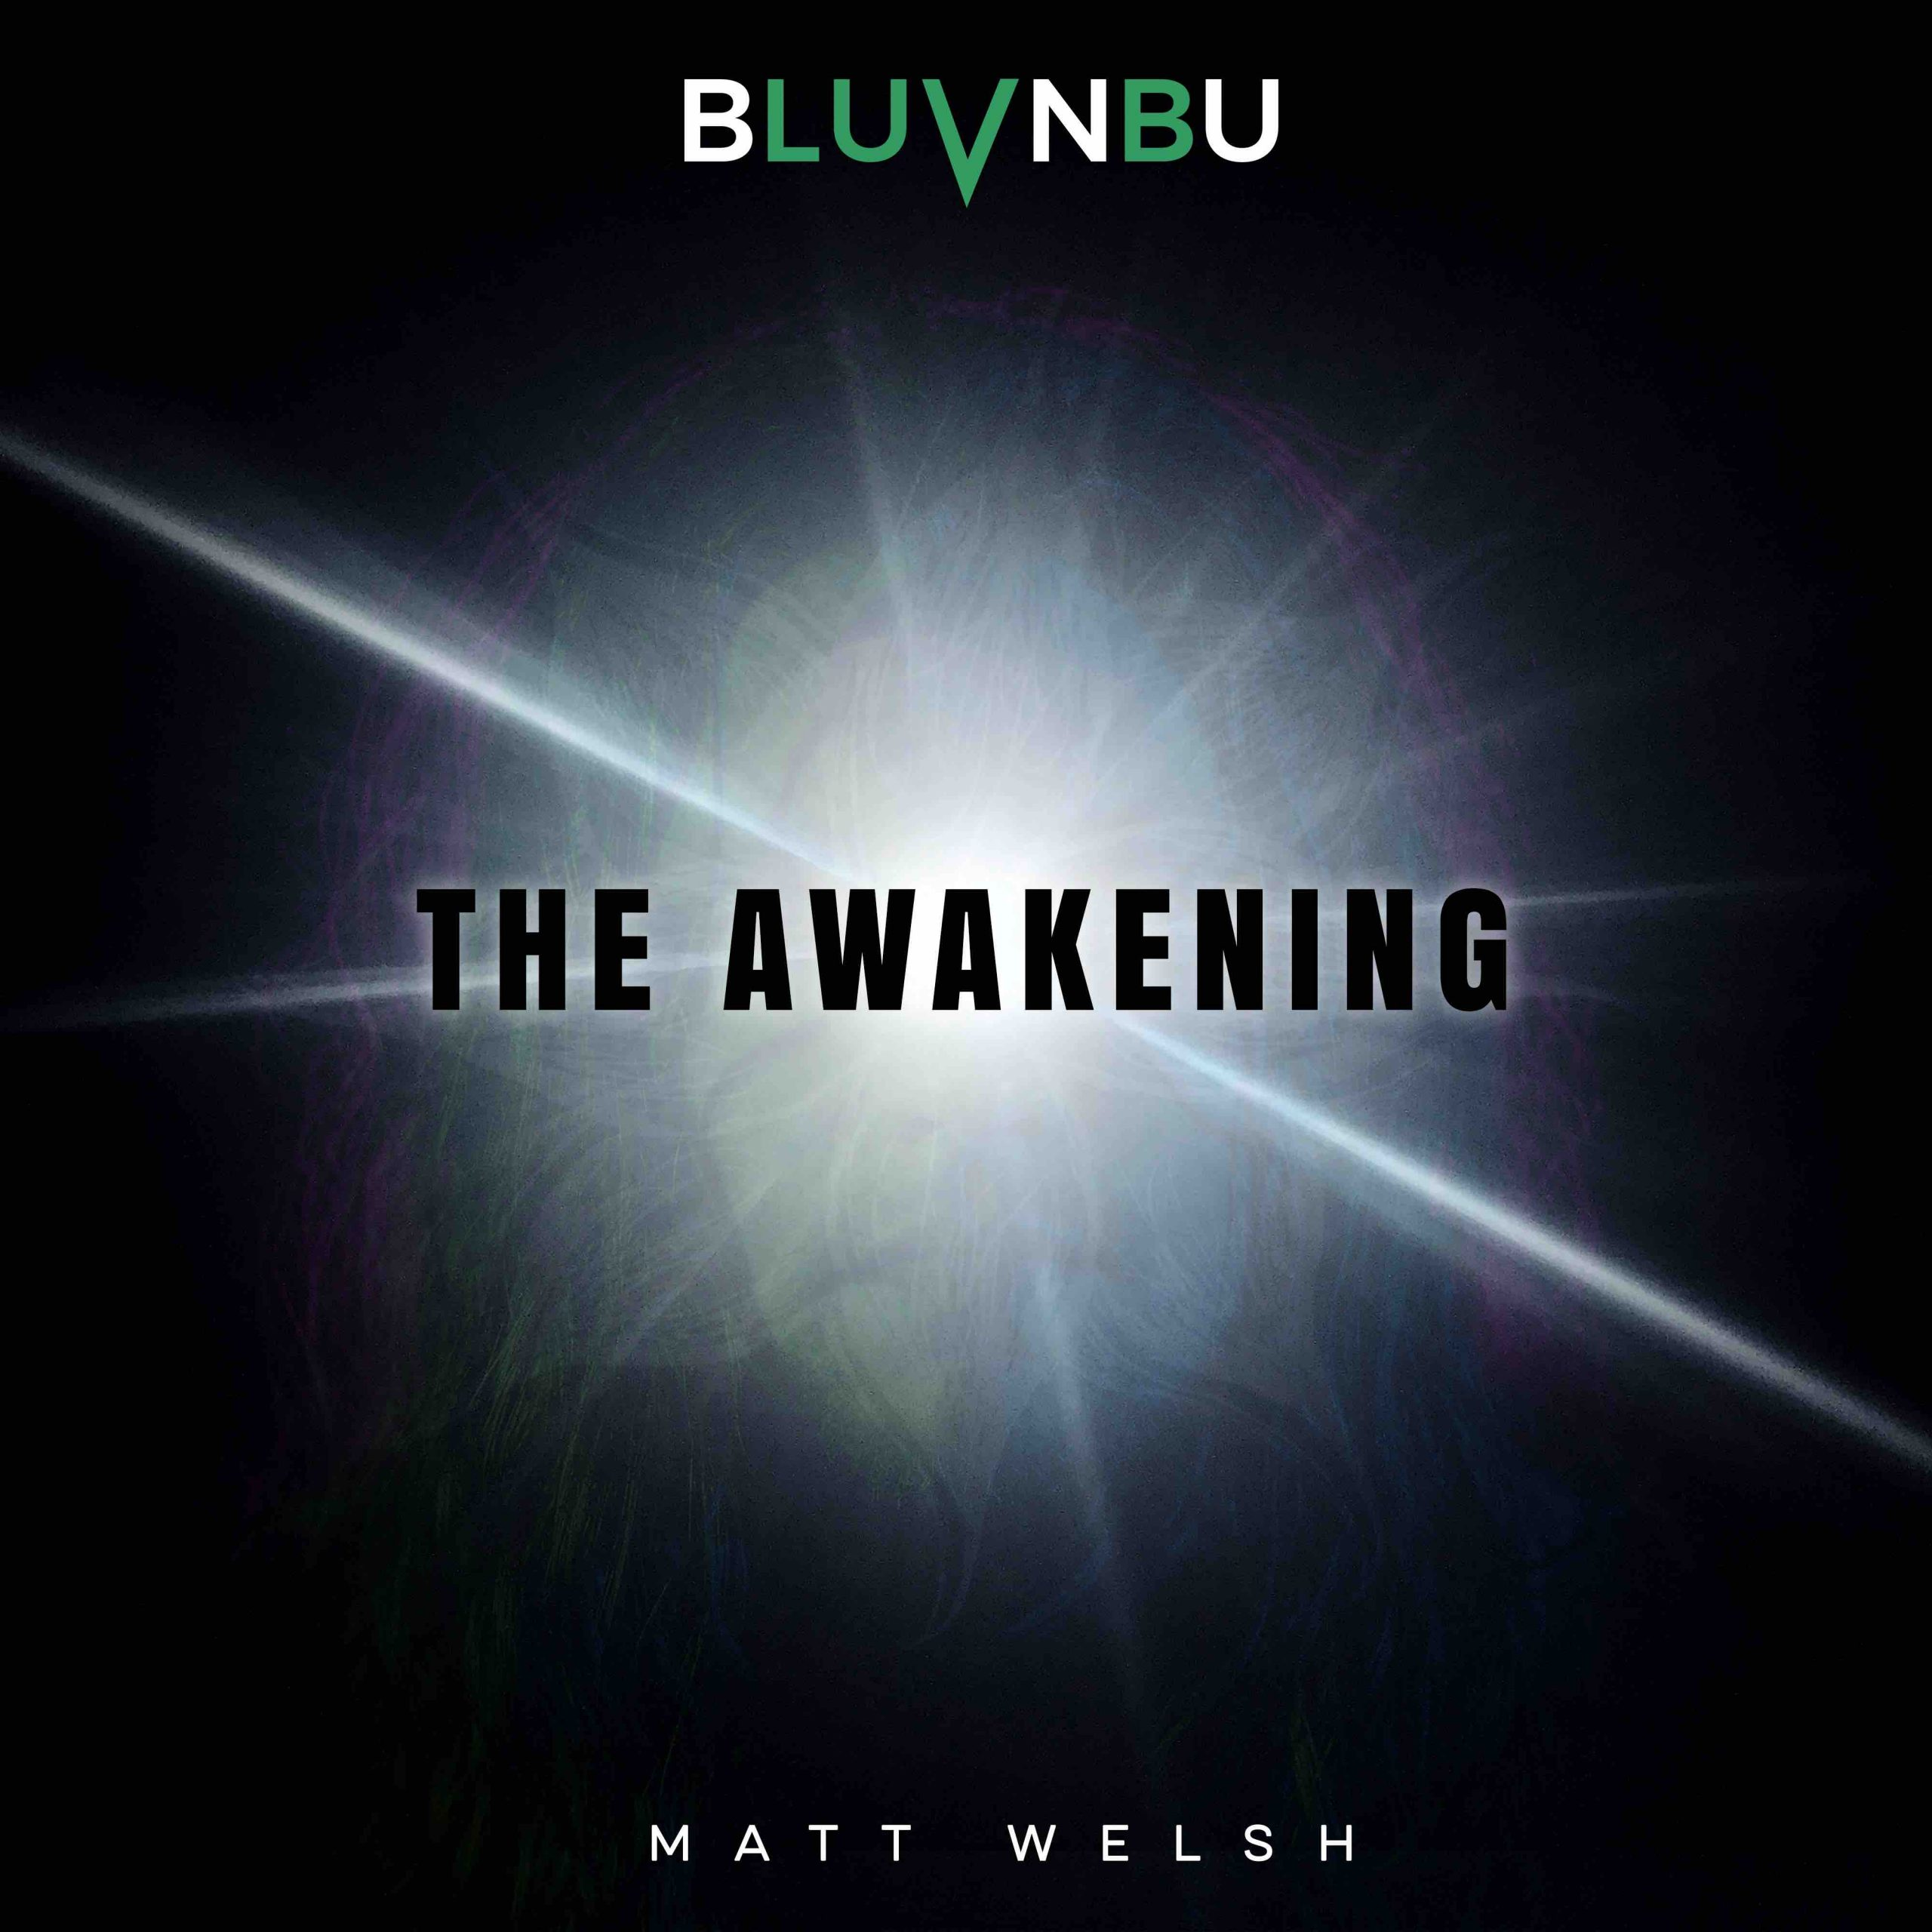 Matt Welsh, BLUVNBU, The Awakening, Beloveandbeyou, New Age, Rock, Bitcoin, Anarchy